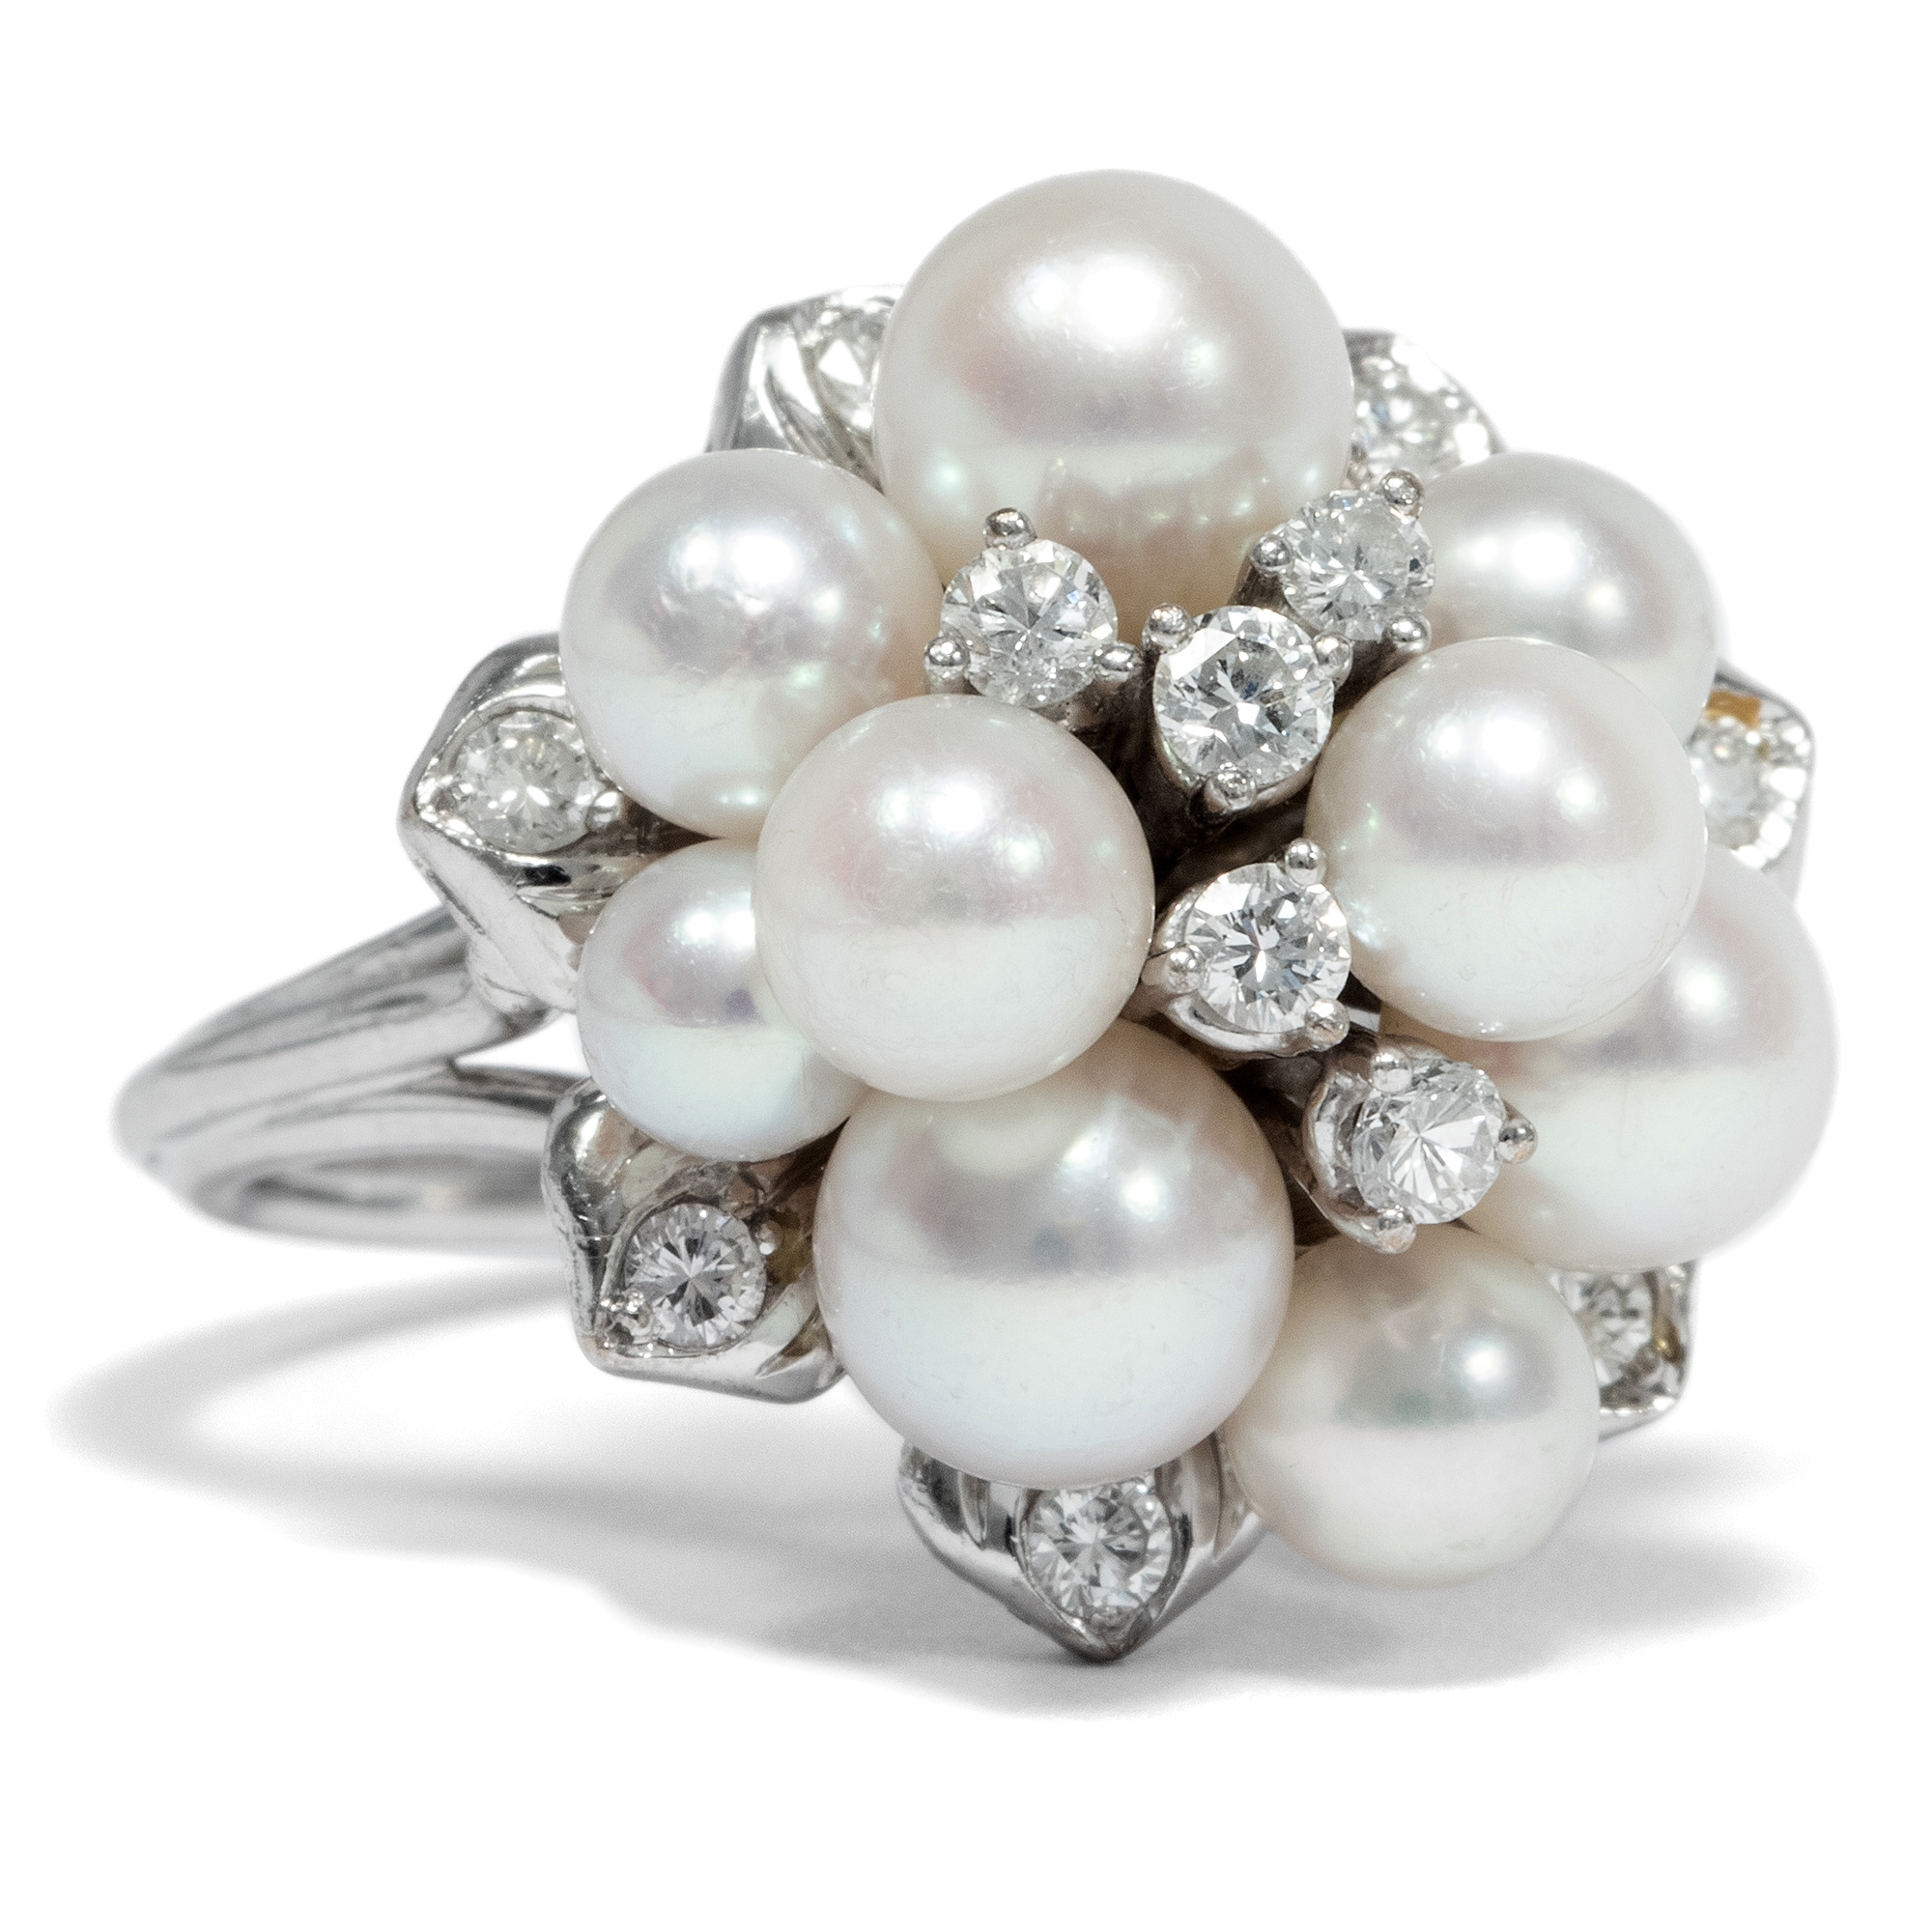 Diamonds And Pearls Wundervoller Cluster Ring Mit Perlen